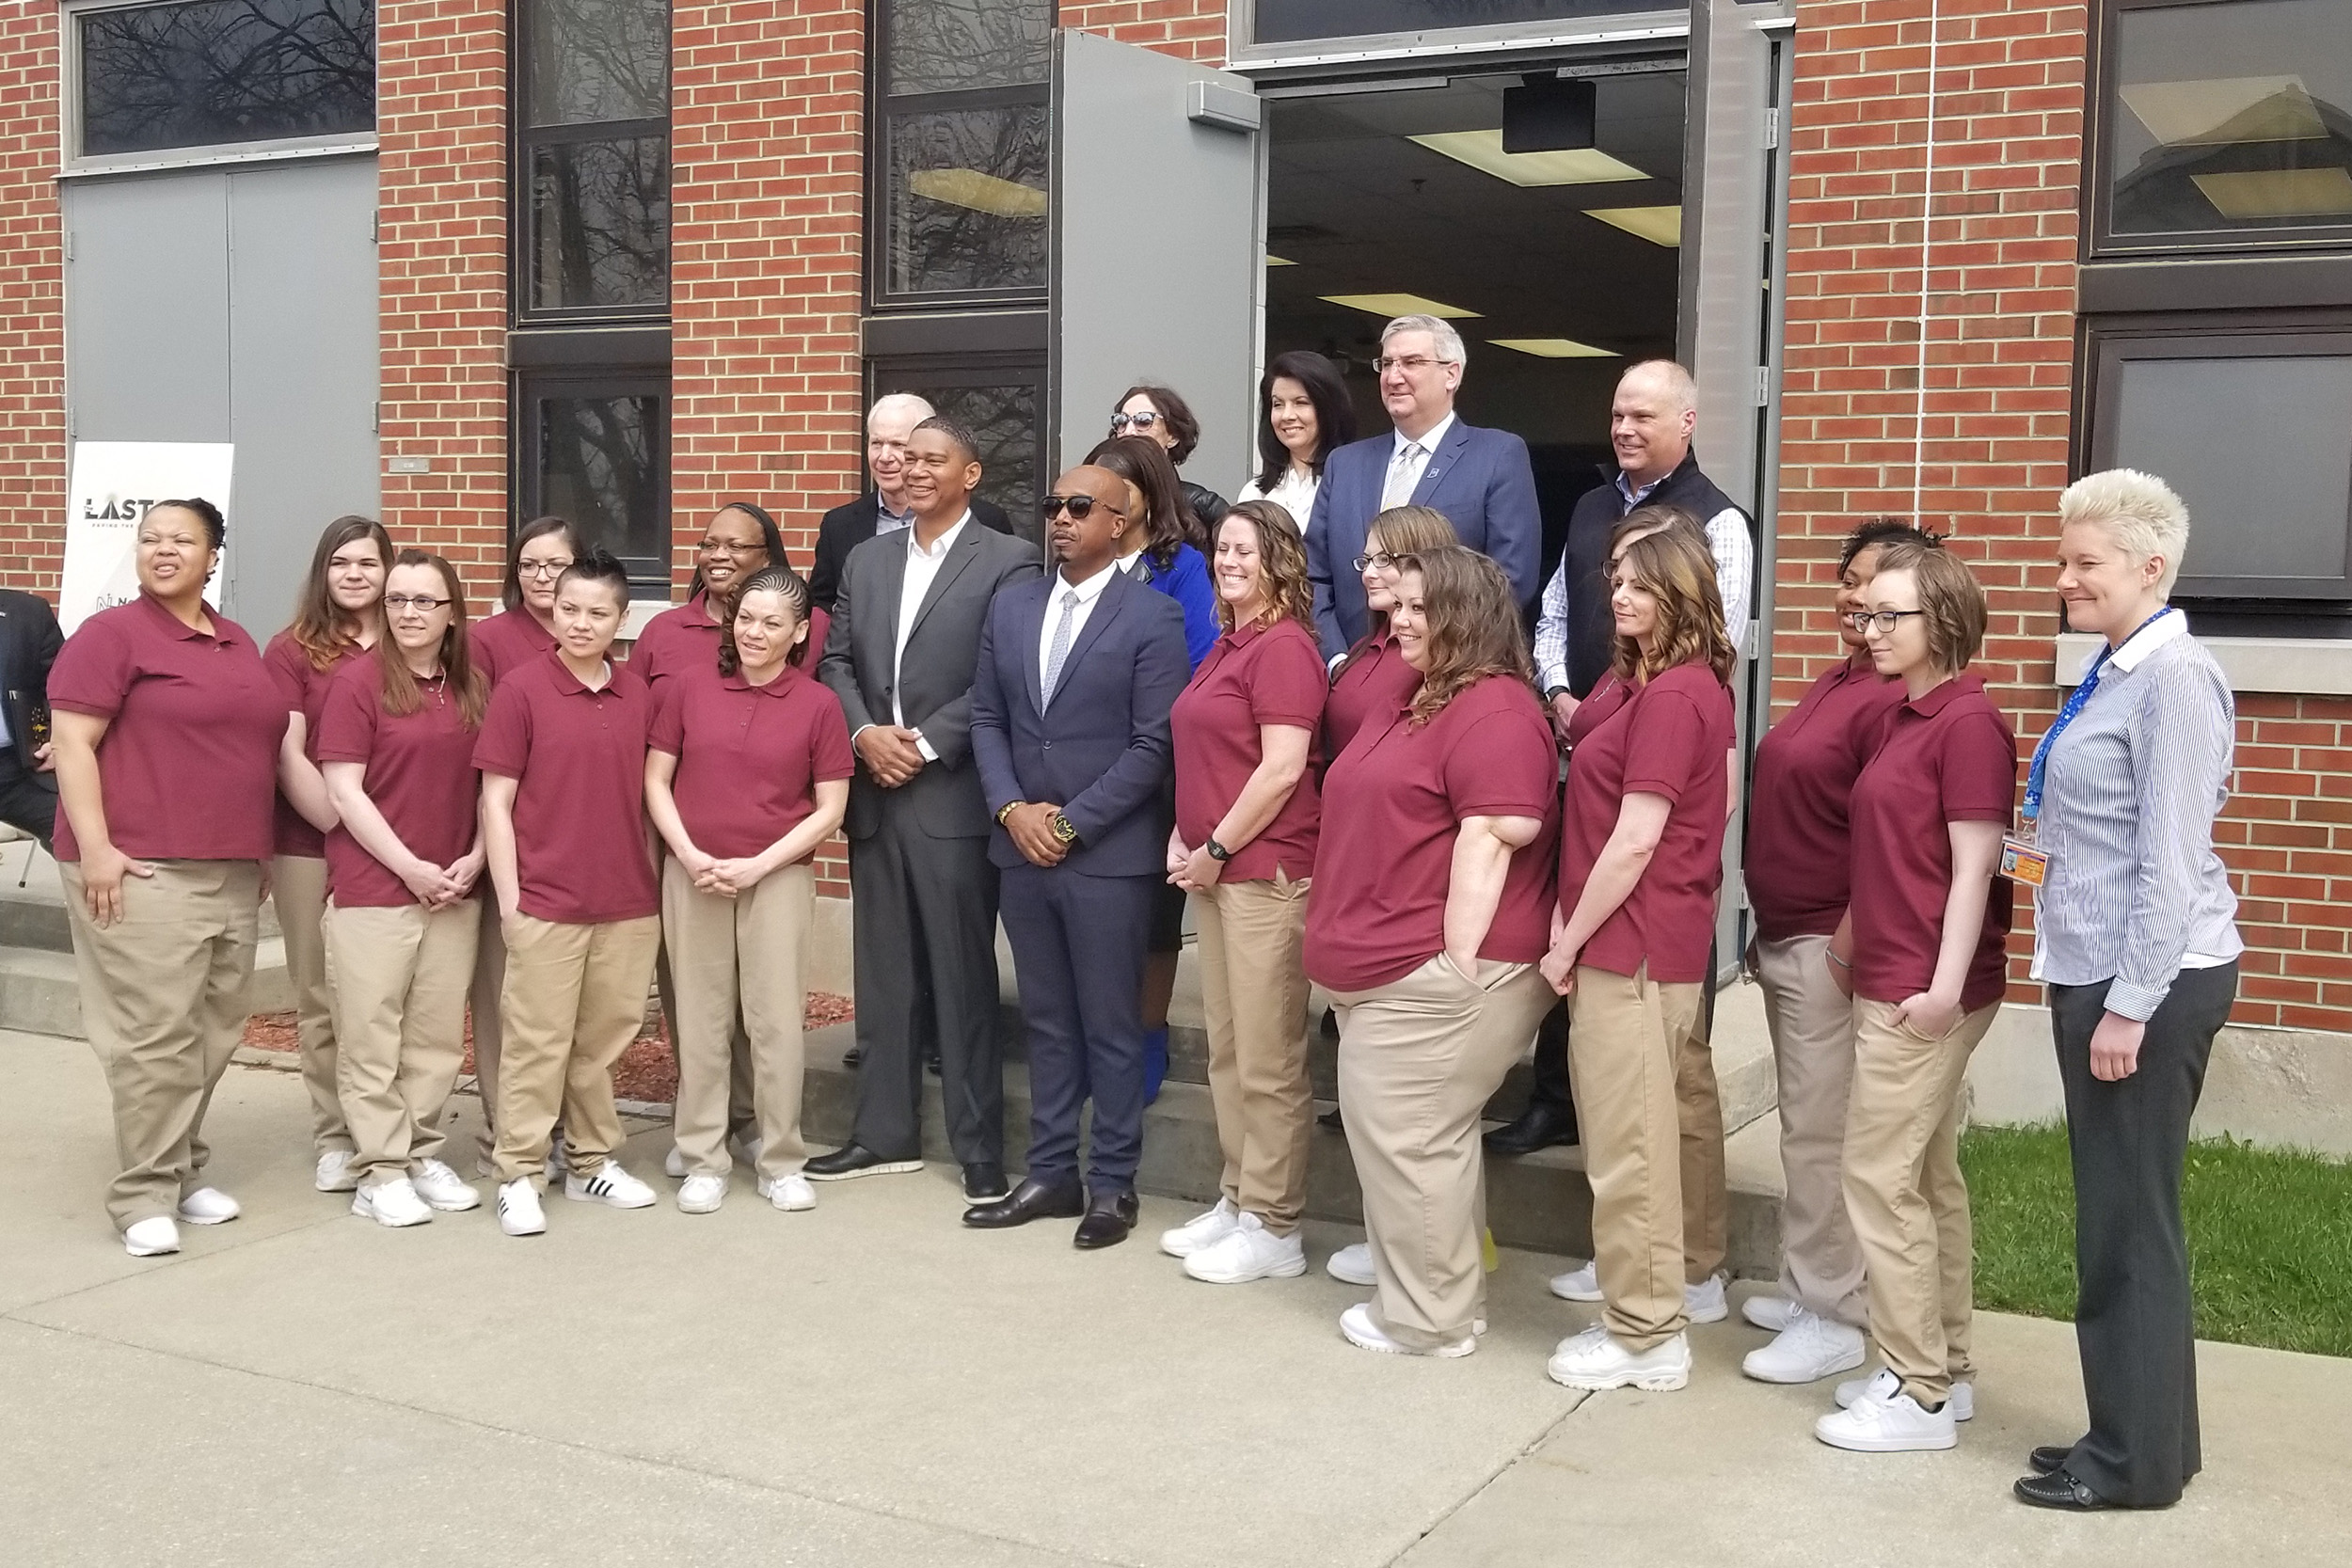 The inaugural class gets a picture with MC Hammer, Gov. Eric Holcomb and others to commemorate the day. (Samantha Horton/IPB News)